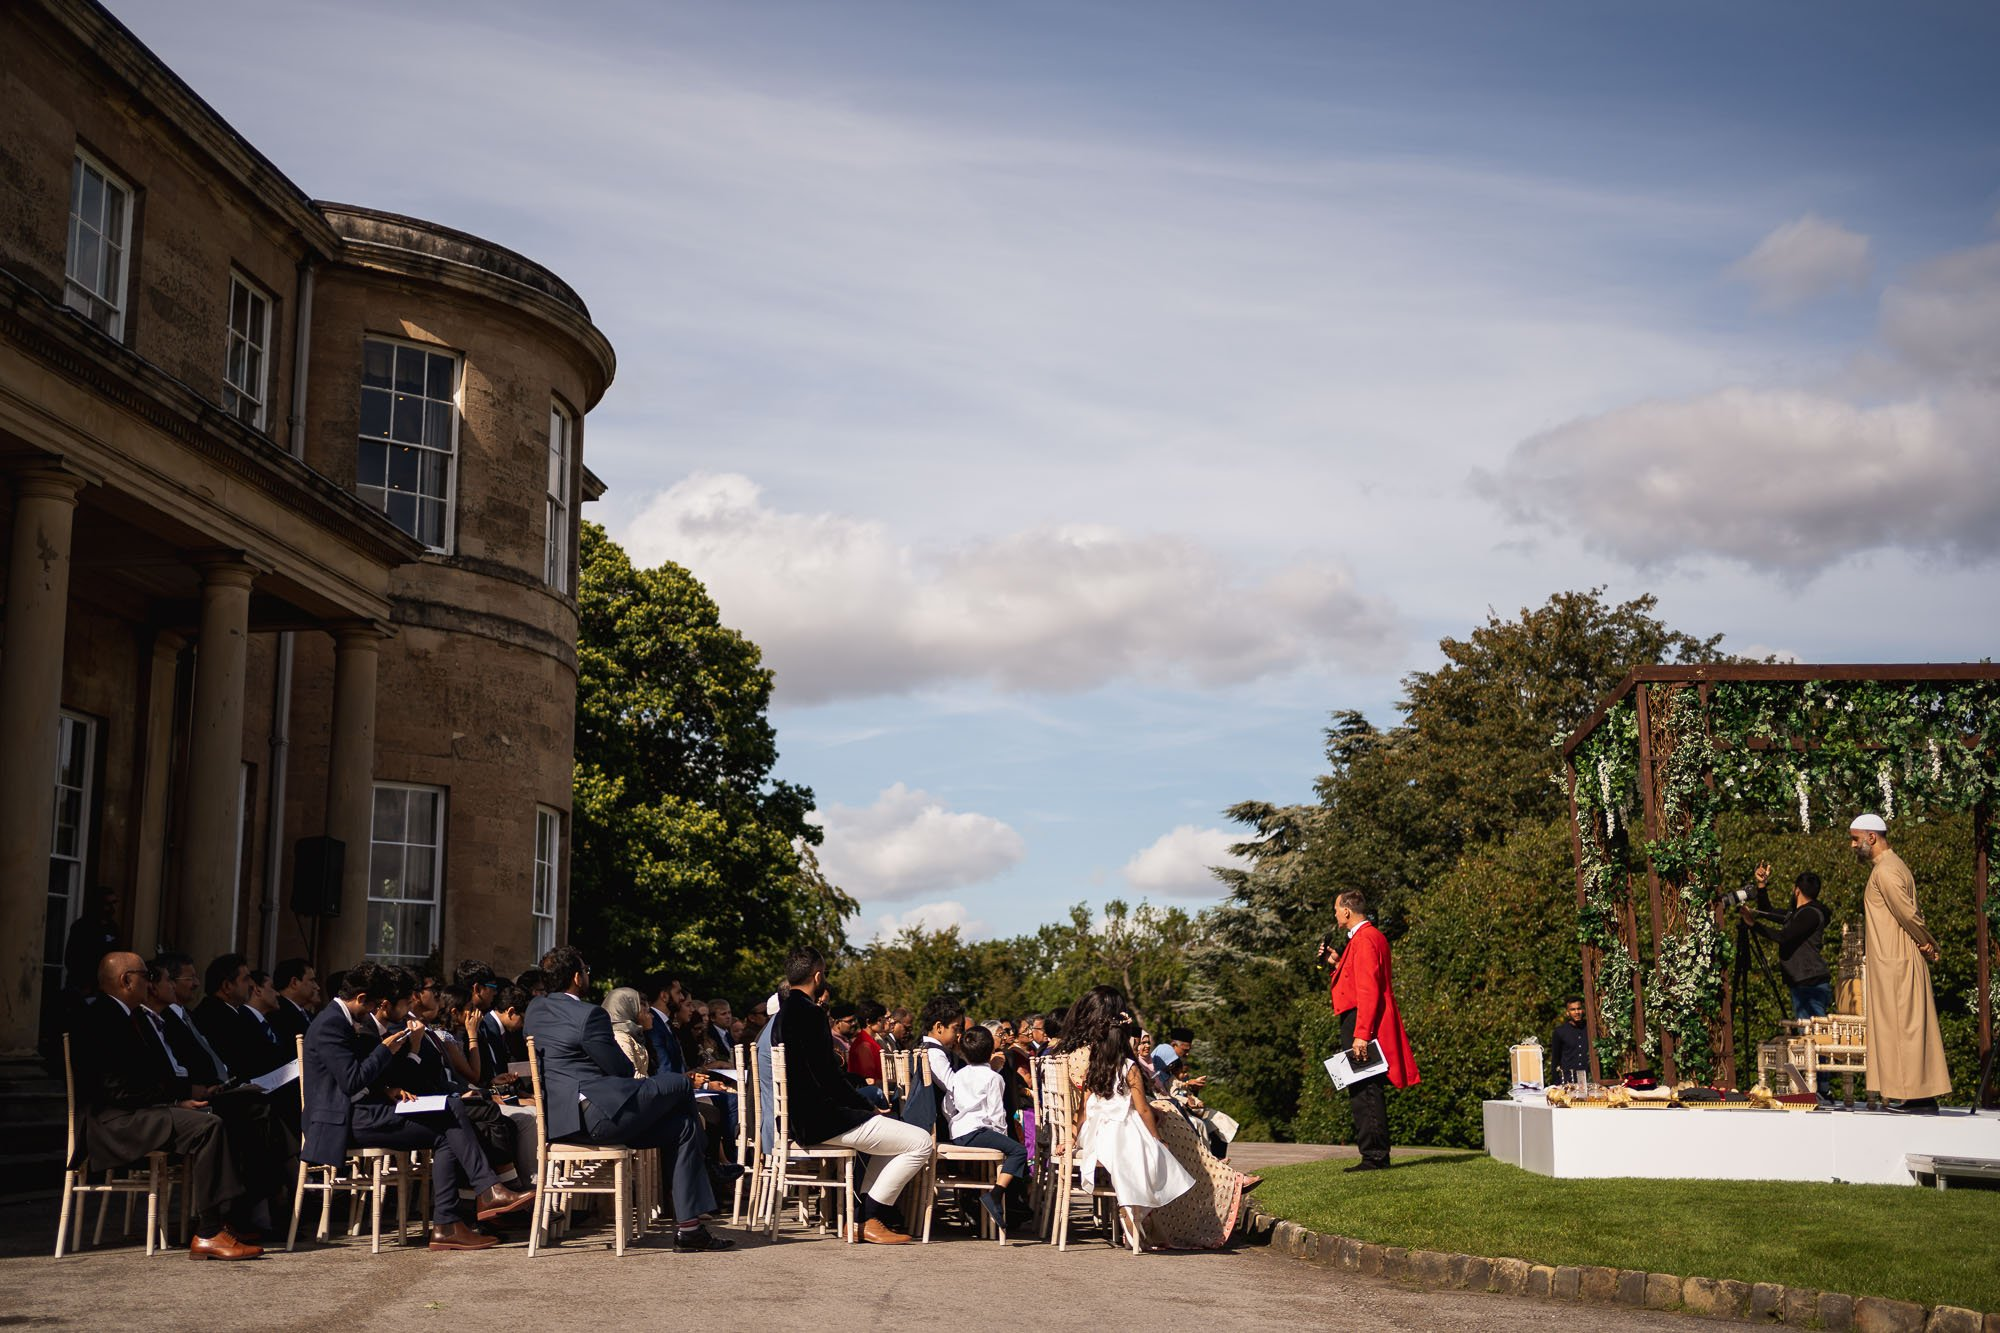 Rudding Park, Yorkshire, Asian Wedding Photography, outdoor nikkah ceremony, toastmaster